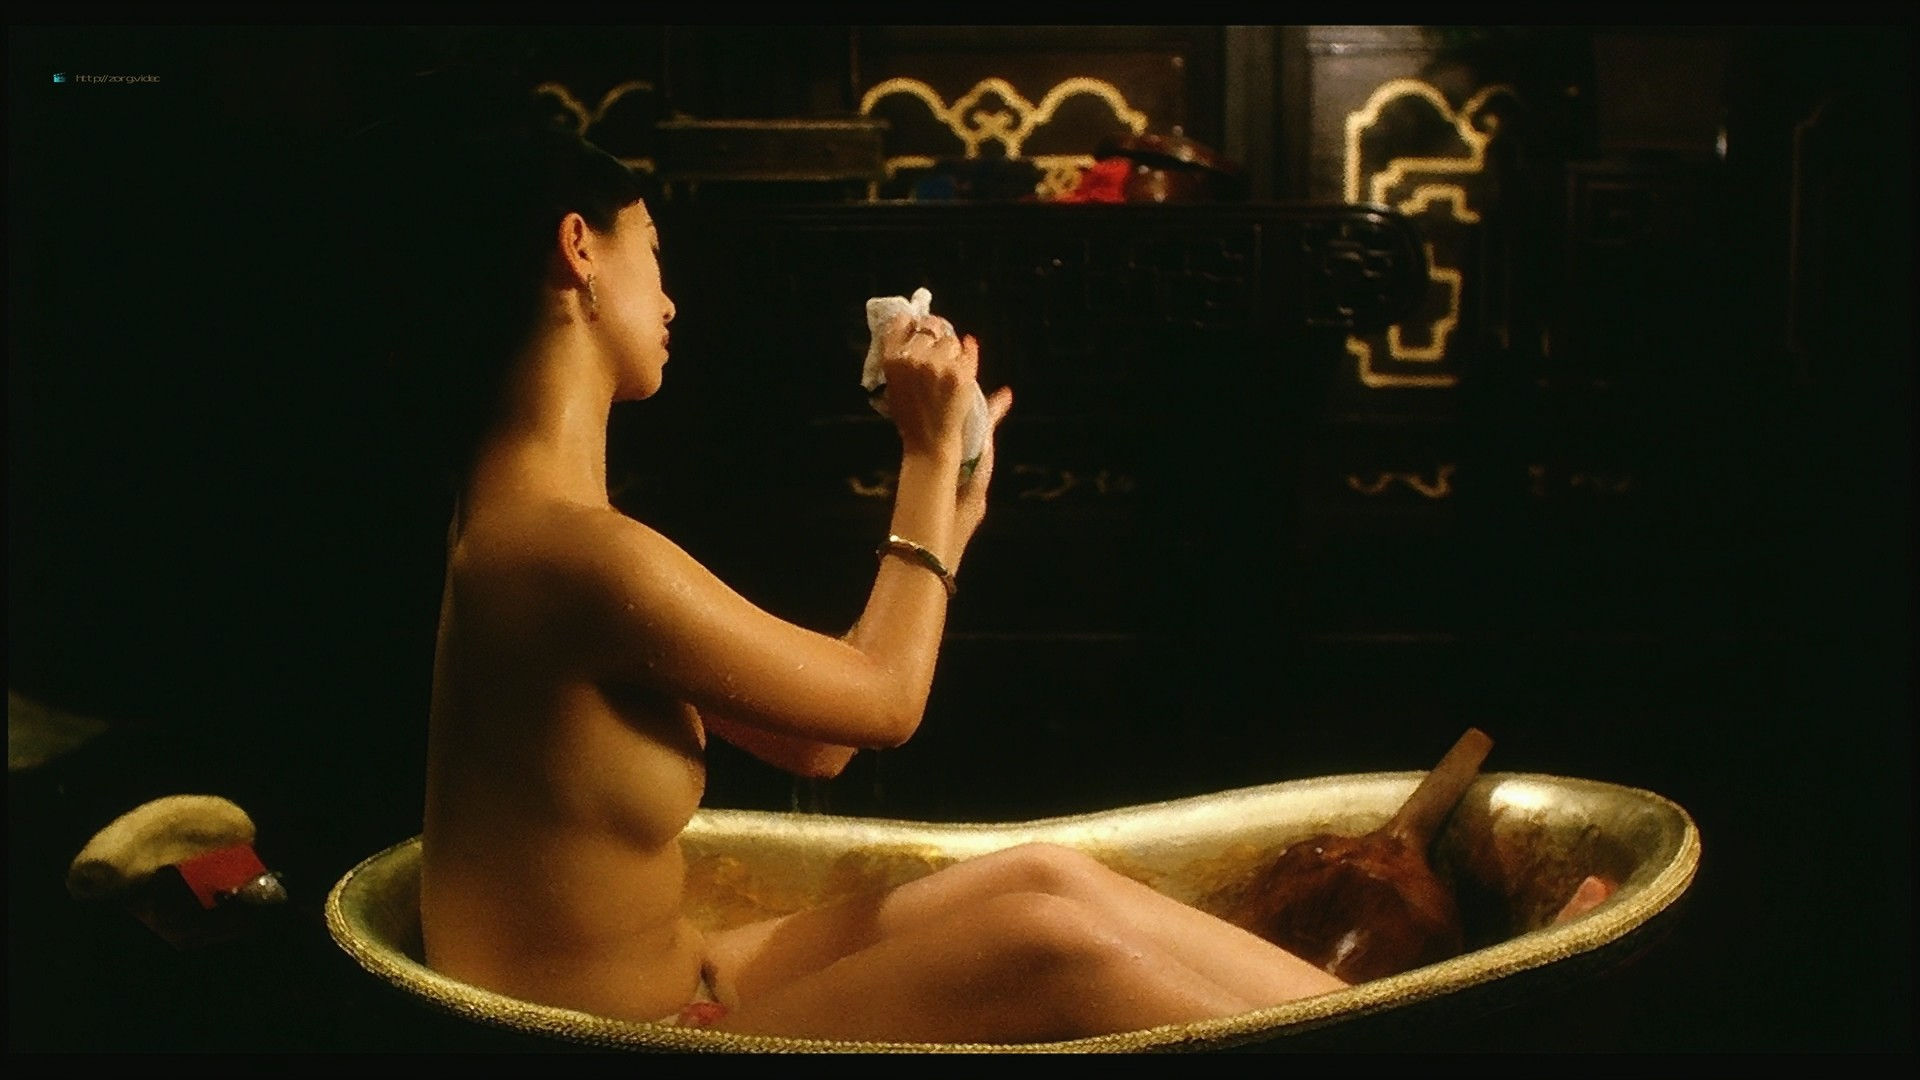 Yvonne Yung Hung nude and a lot of sex Julie Lee and others nude too - Sex and the Emperor (HK-1994) HD 1080p BluRay (13)